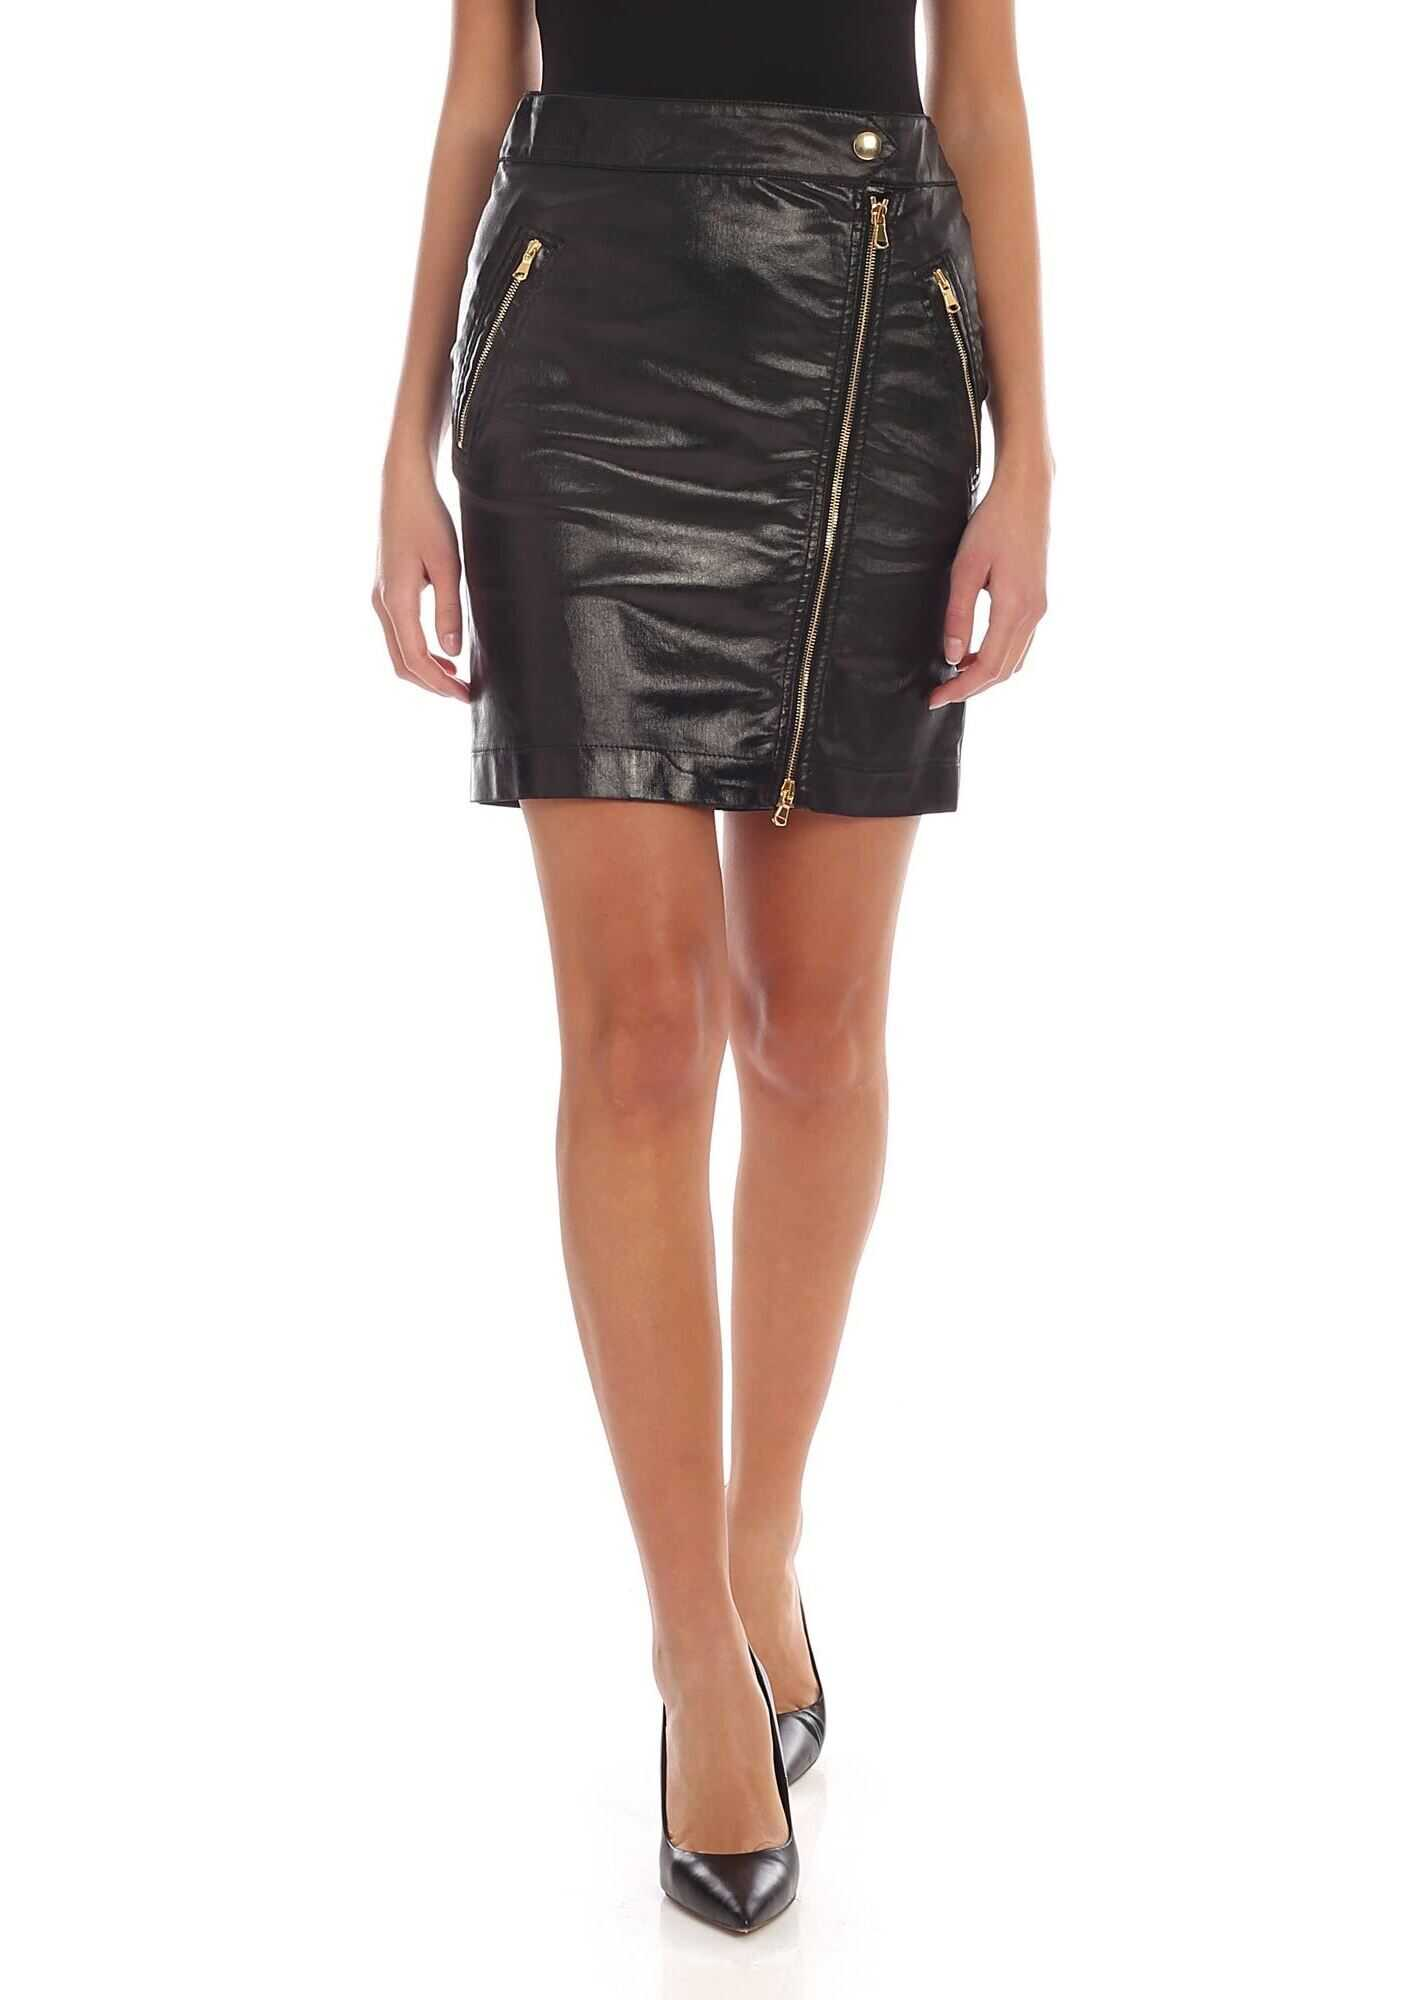 Moschino Coated Cotton Mini-Skirt With Zip Details Black